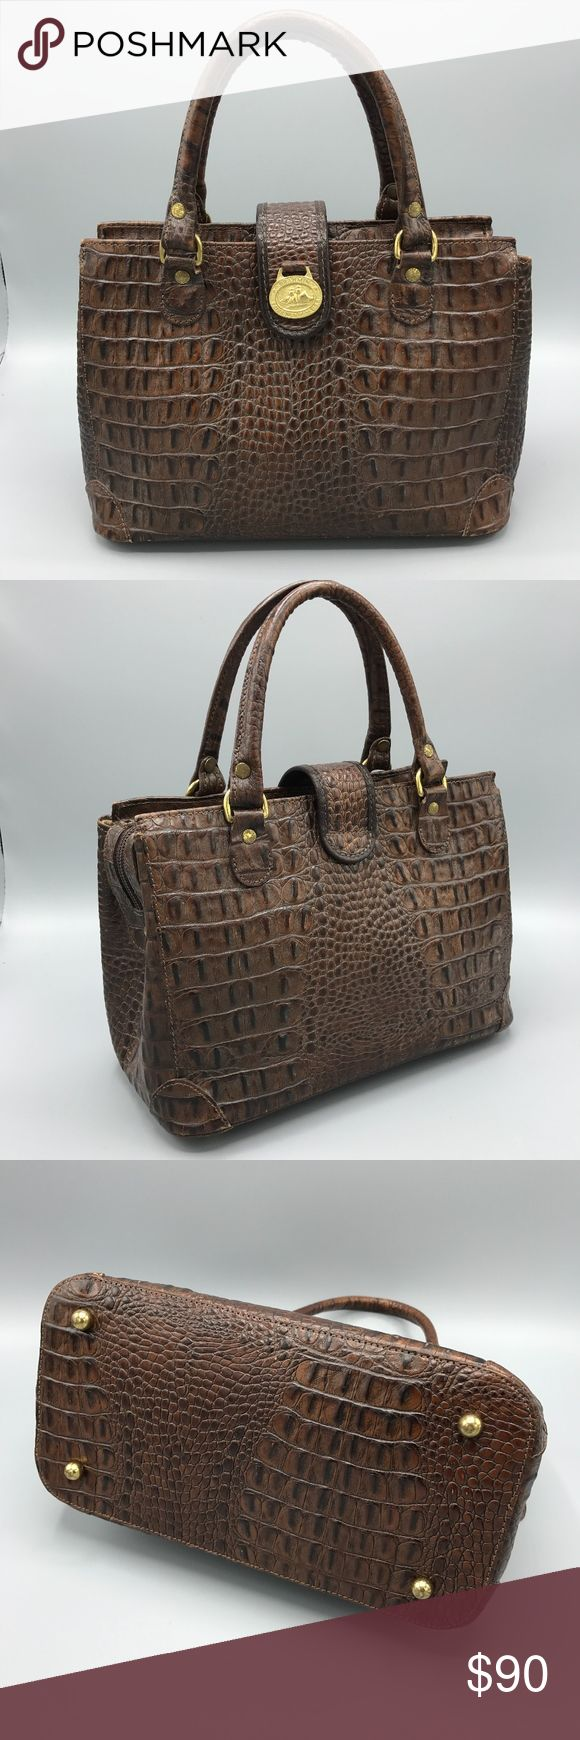 """Brahmin Classic Brown Small Satchel Zip Top EUC Vintage Brahmin. Gently Preloved.  Exquisitely crafted in luxurious croc-embossed leather, this Brahmin carryall offers intuitive organization in a classic, structured silhouette that never goes out of style - Melbourne style satchel.  Leather Small sized bag: 11"""" W x 7"""" H x 5-1/2"""" D 4-1/2""""L double handles Top zip closure Exterior features gold-tone hardware Interior features 1 zip pocket, 2 organizer pockets, key clip and pen loops  Clean and…"""